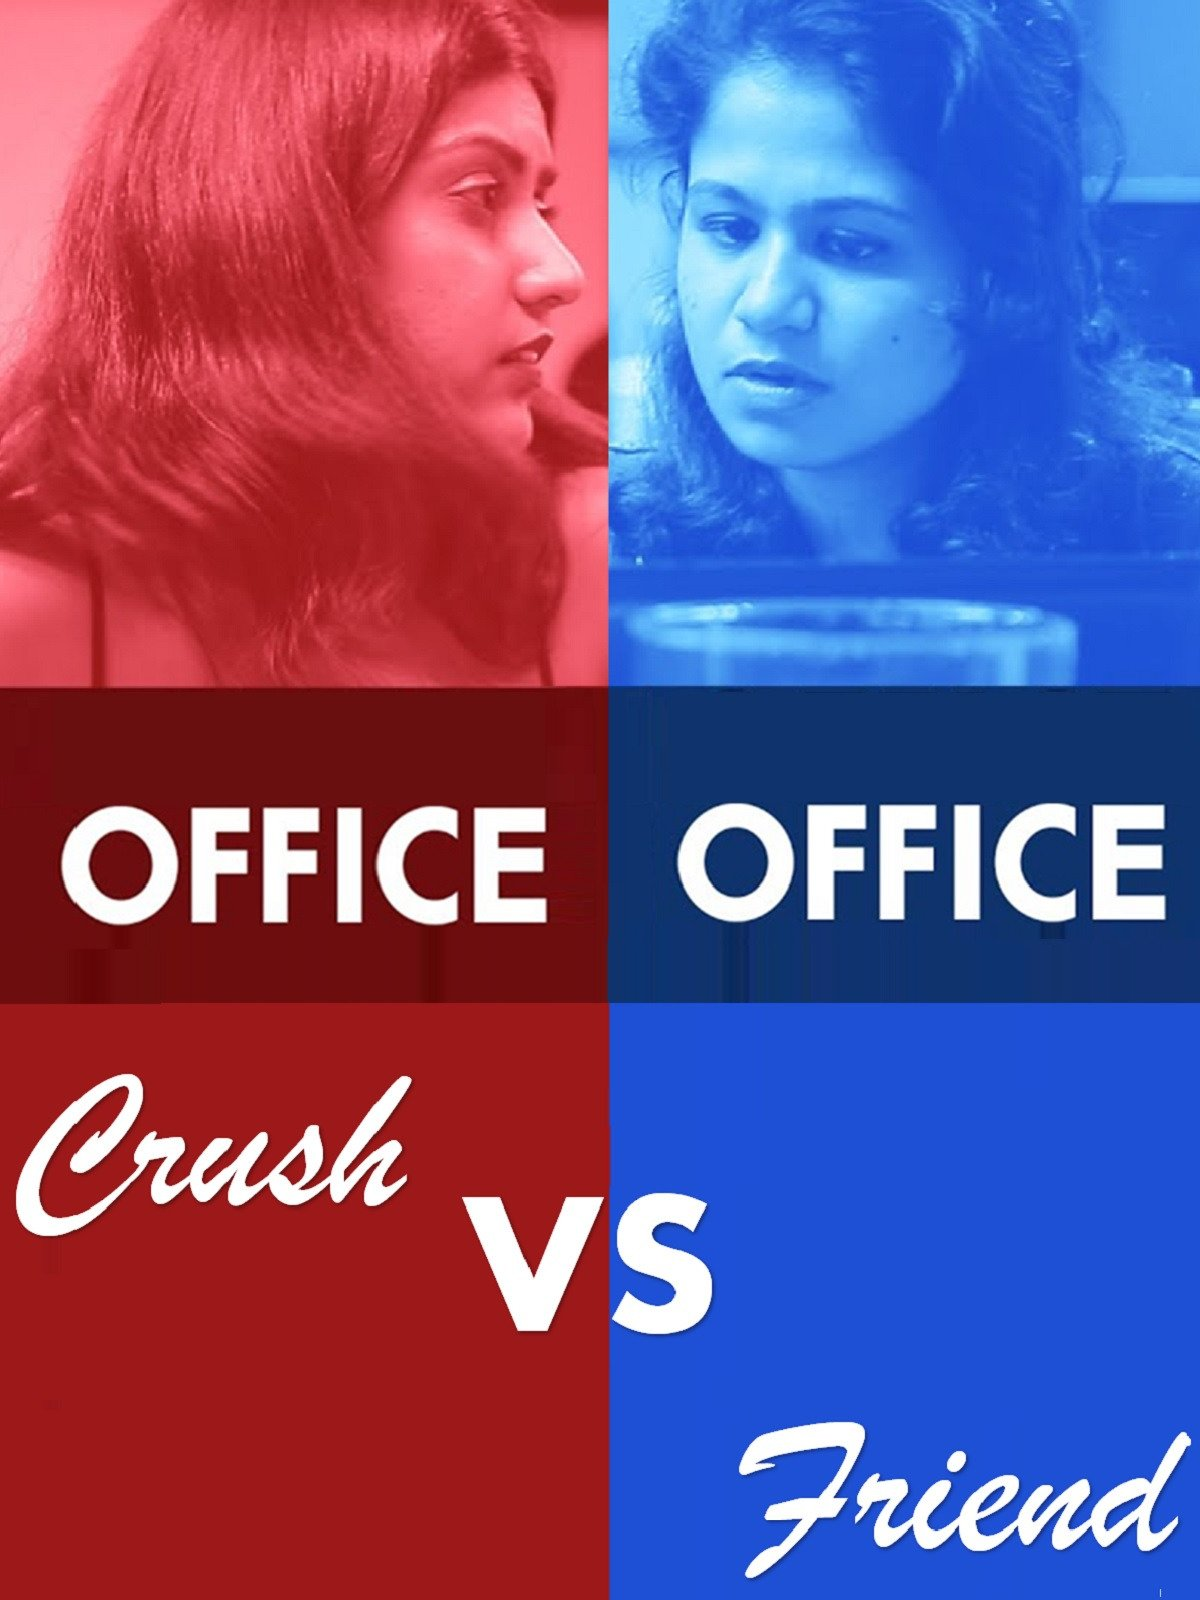 Clip: Office Crush vs Office Friend